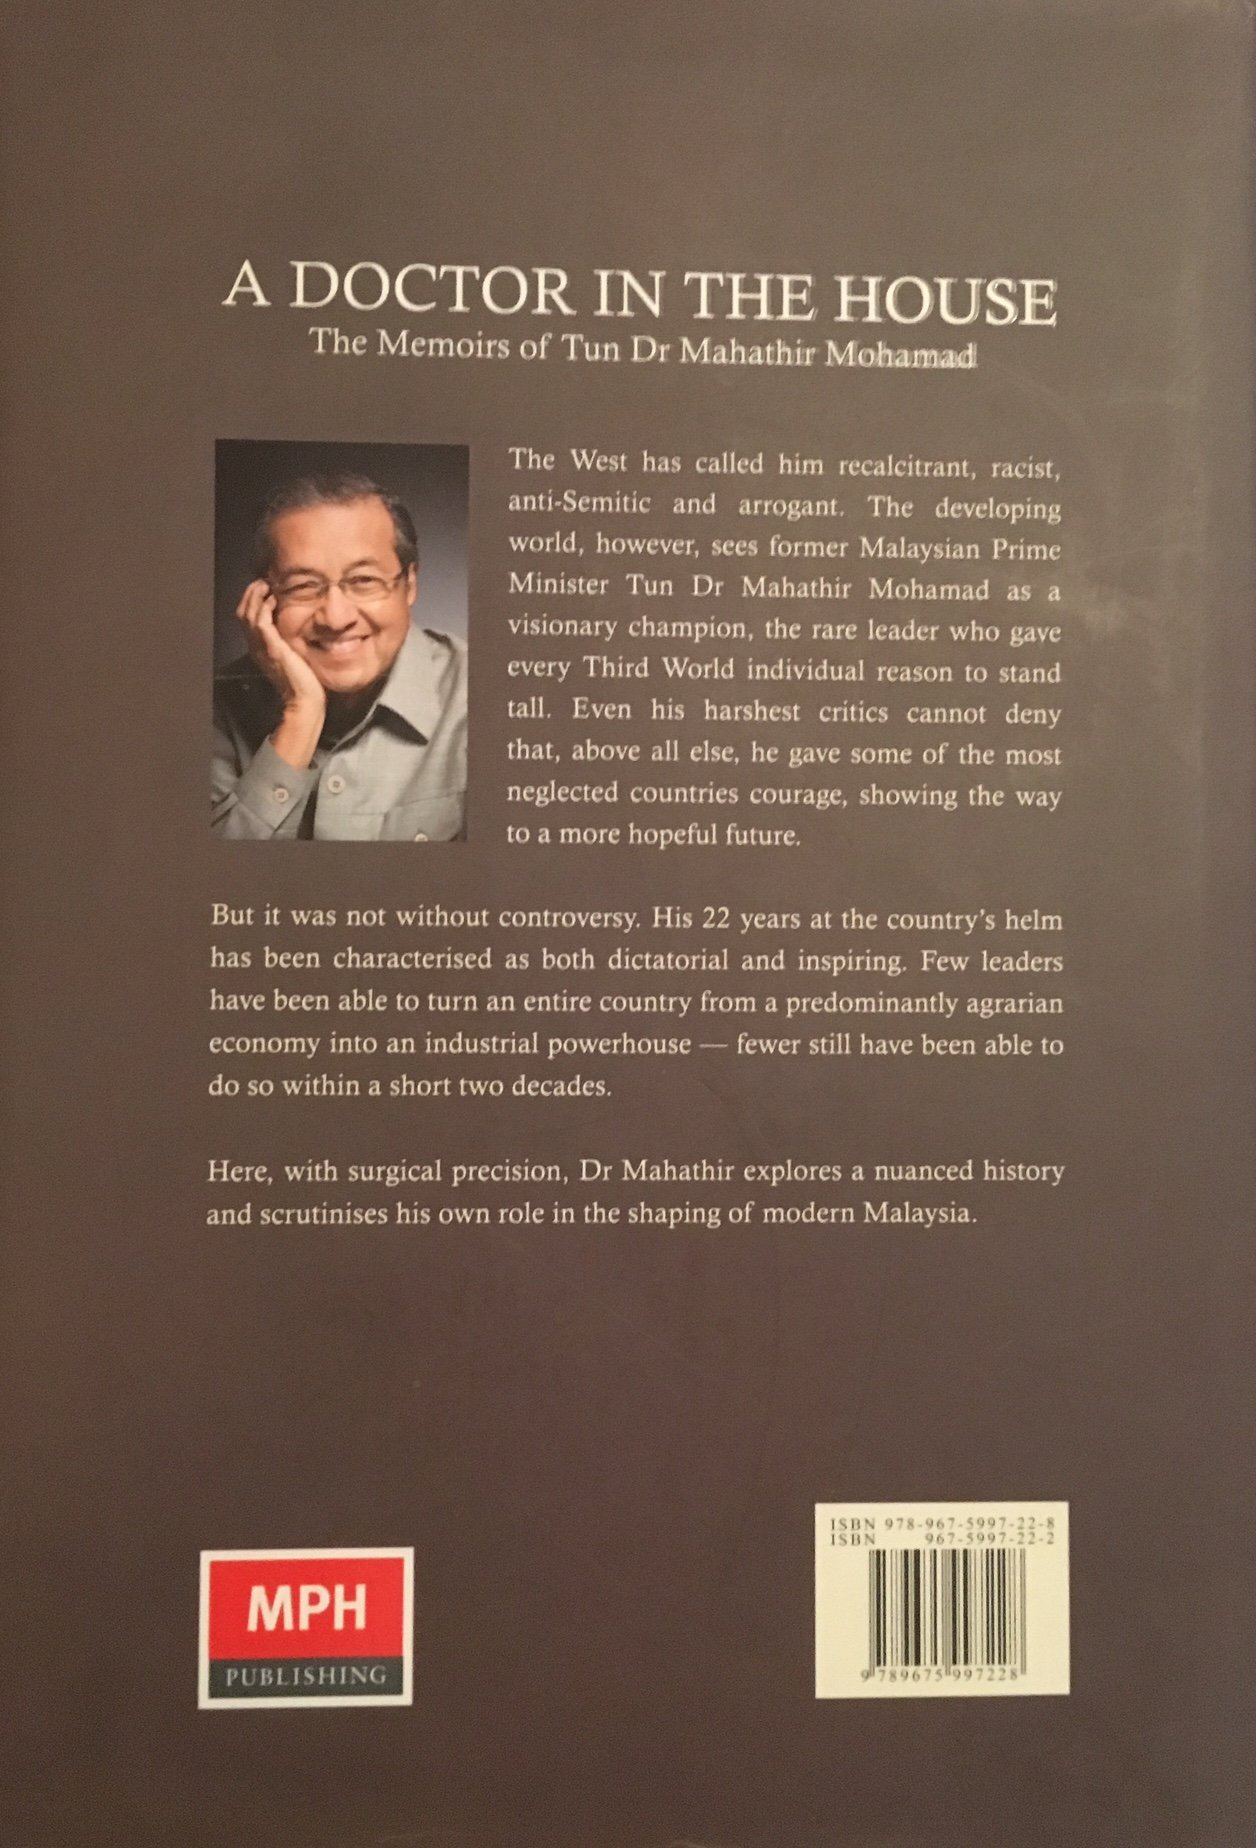 A Doctor In The House Memoirs Of Tun Dr Mahathir Mohamad 9789675997228 Amazon Books